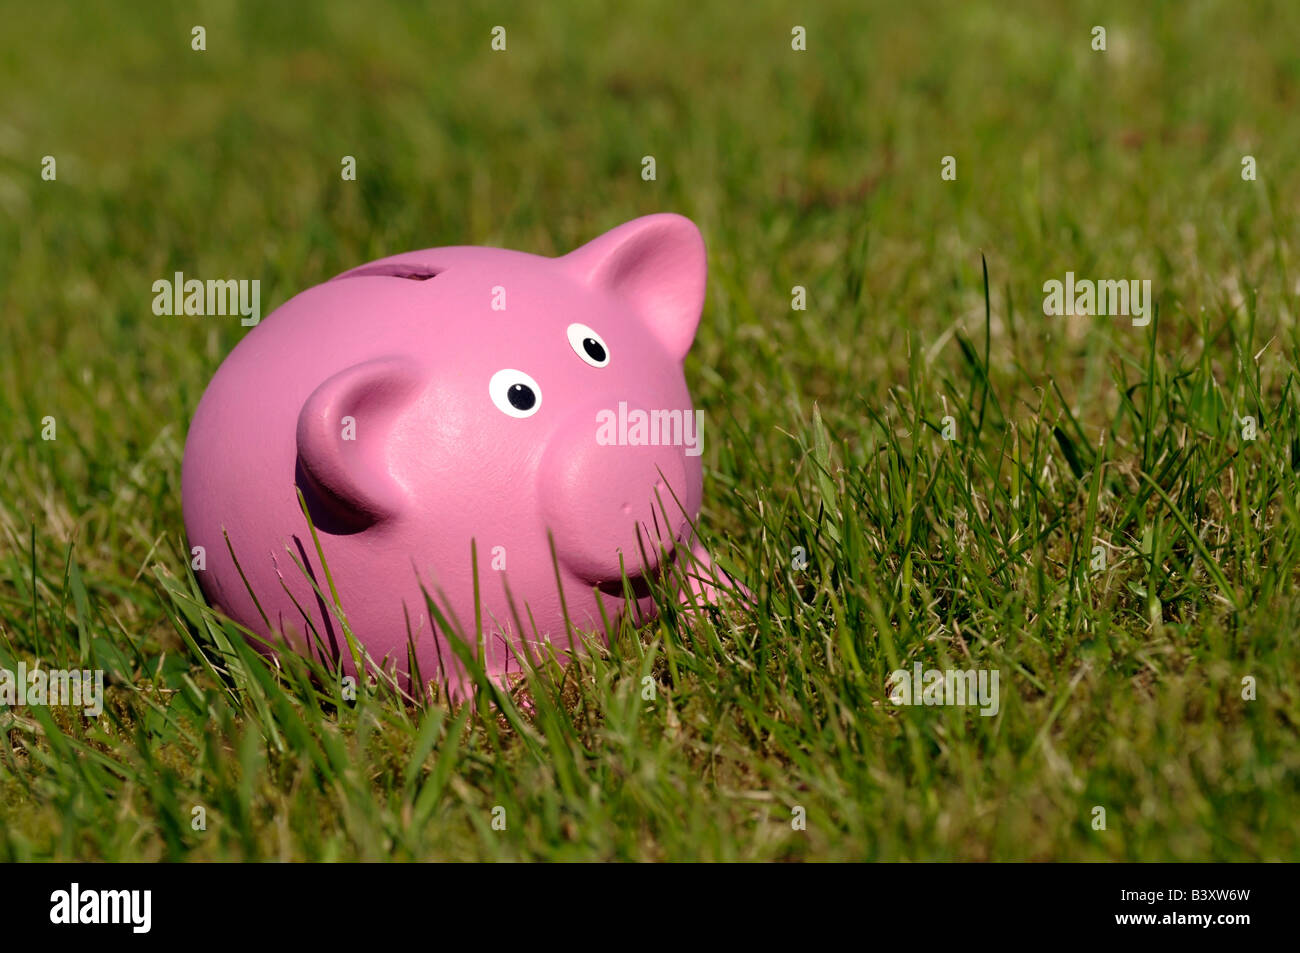 Pink piggy bank in long grass - Stock Image